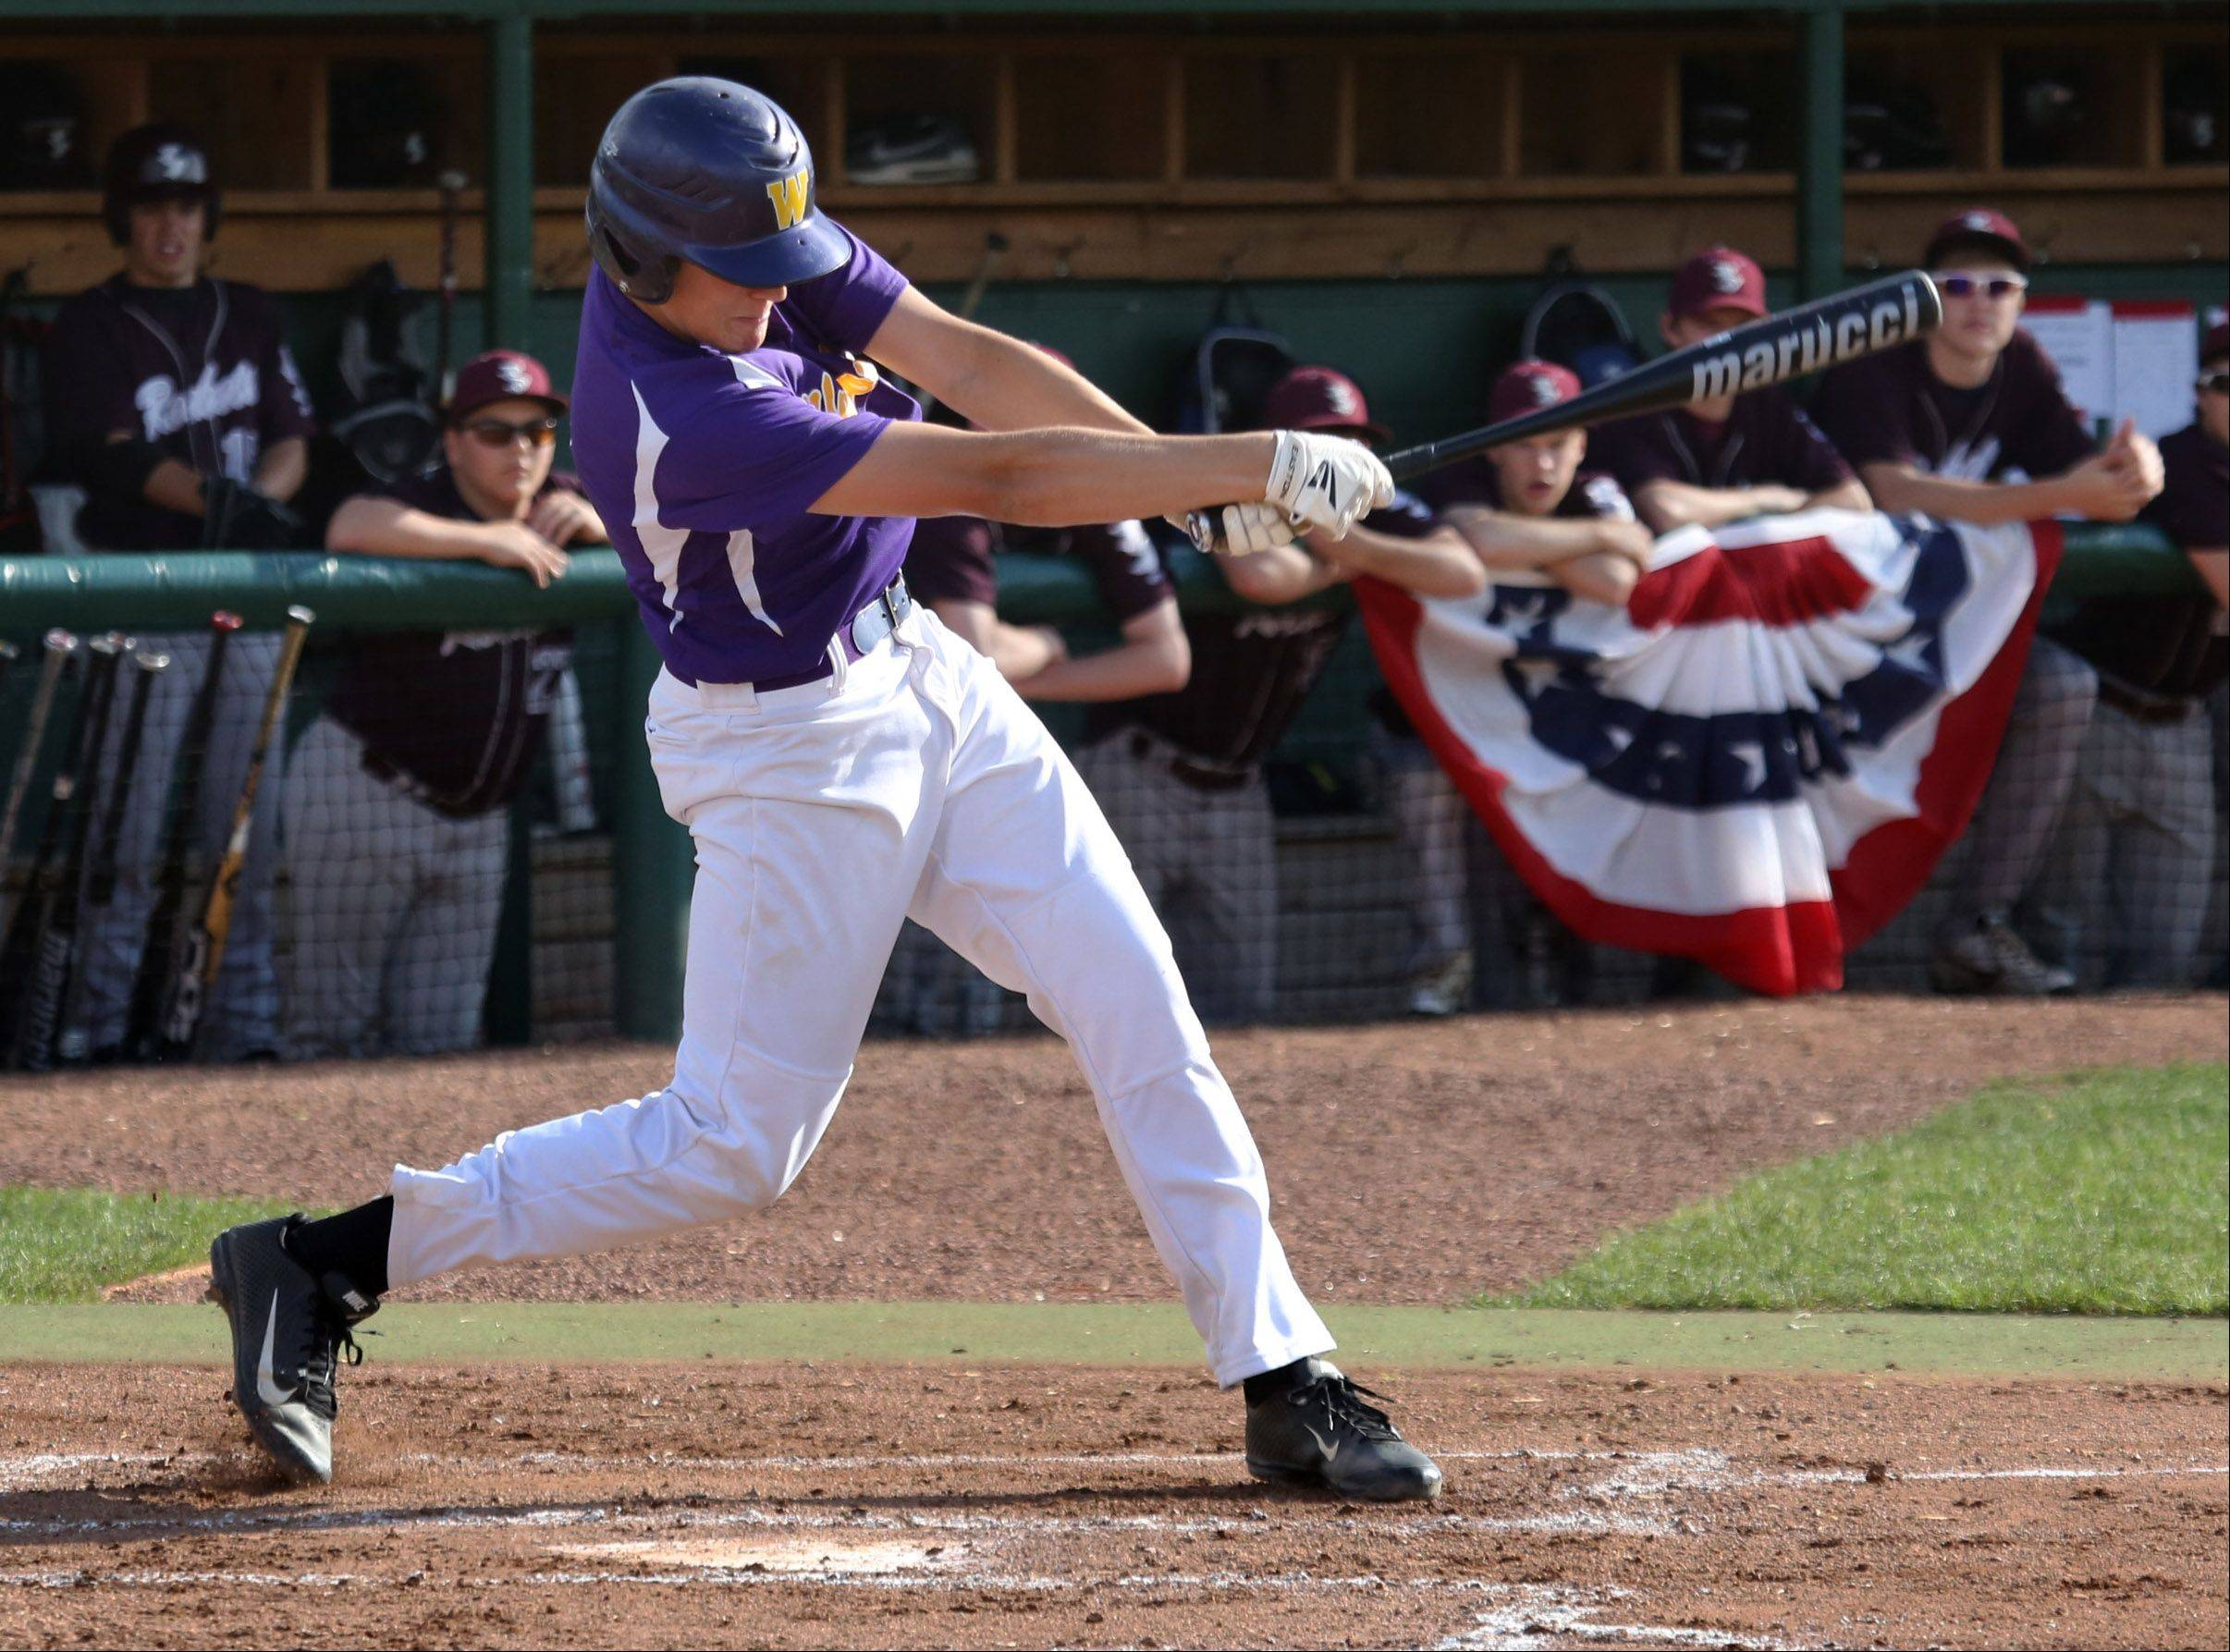 Wauconda's Austin Swenson gets a hit in the first inning of Class 3A sectional semifinal play Thursday against Richmond-Burton at Grayslake Central.